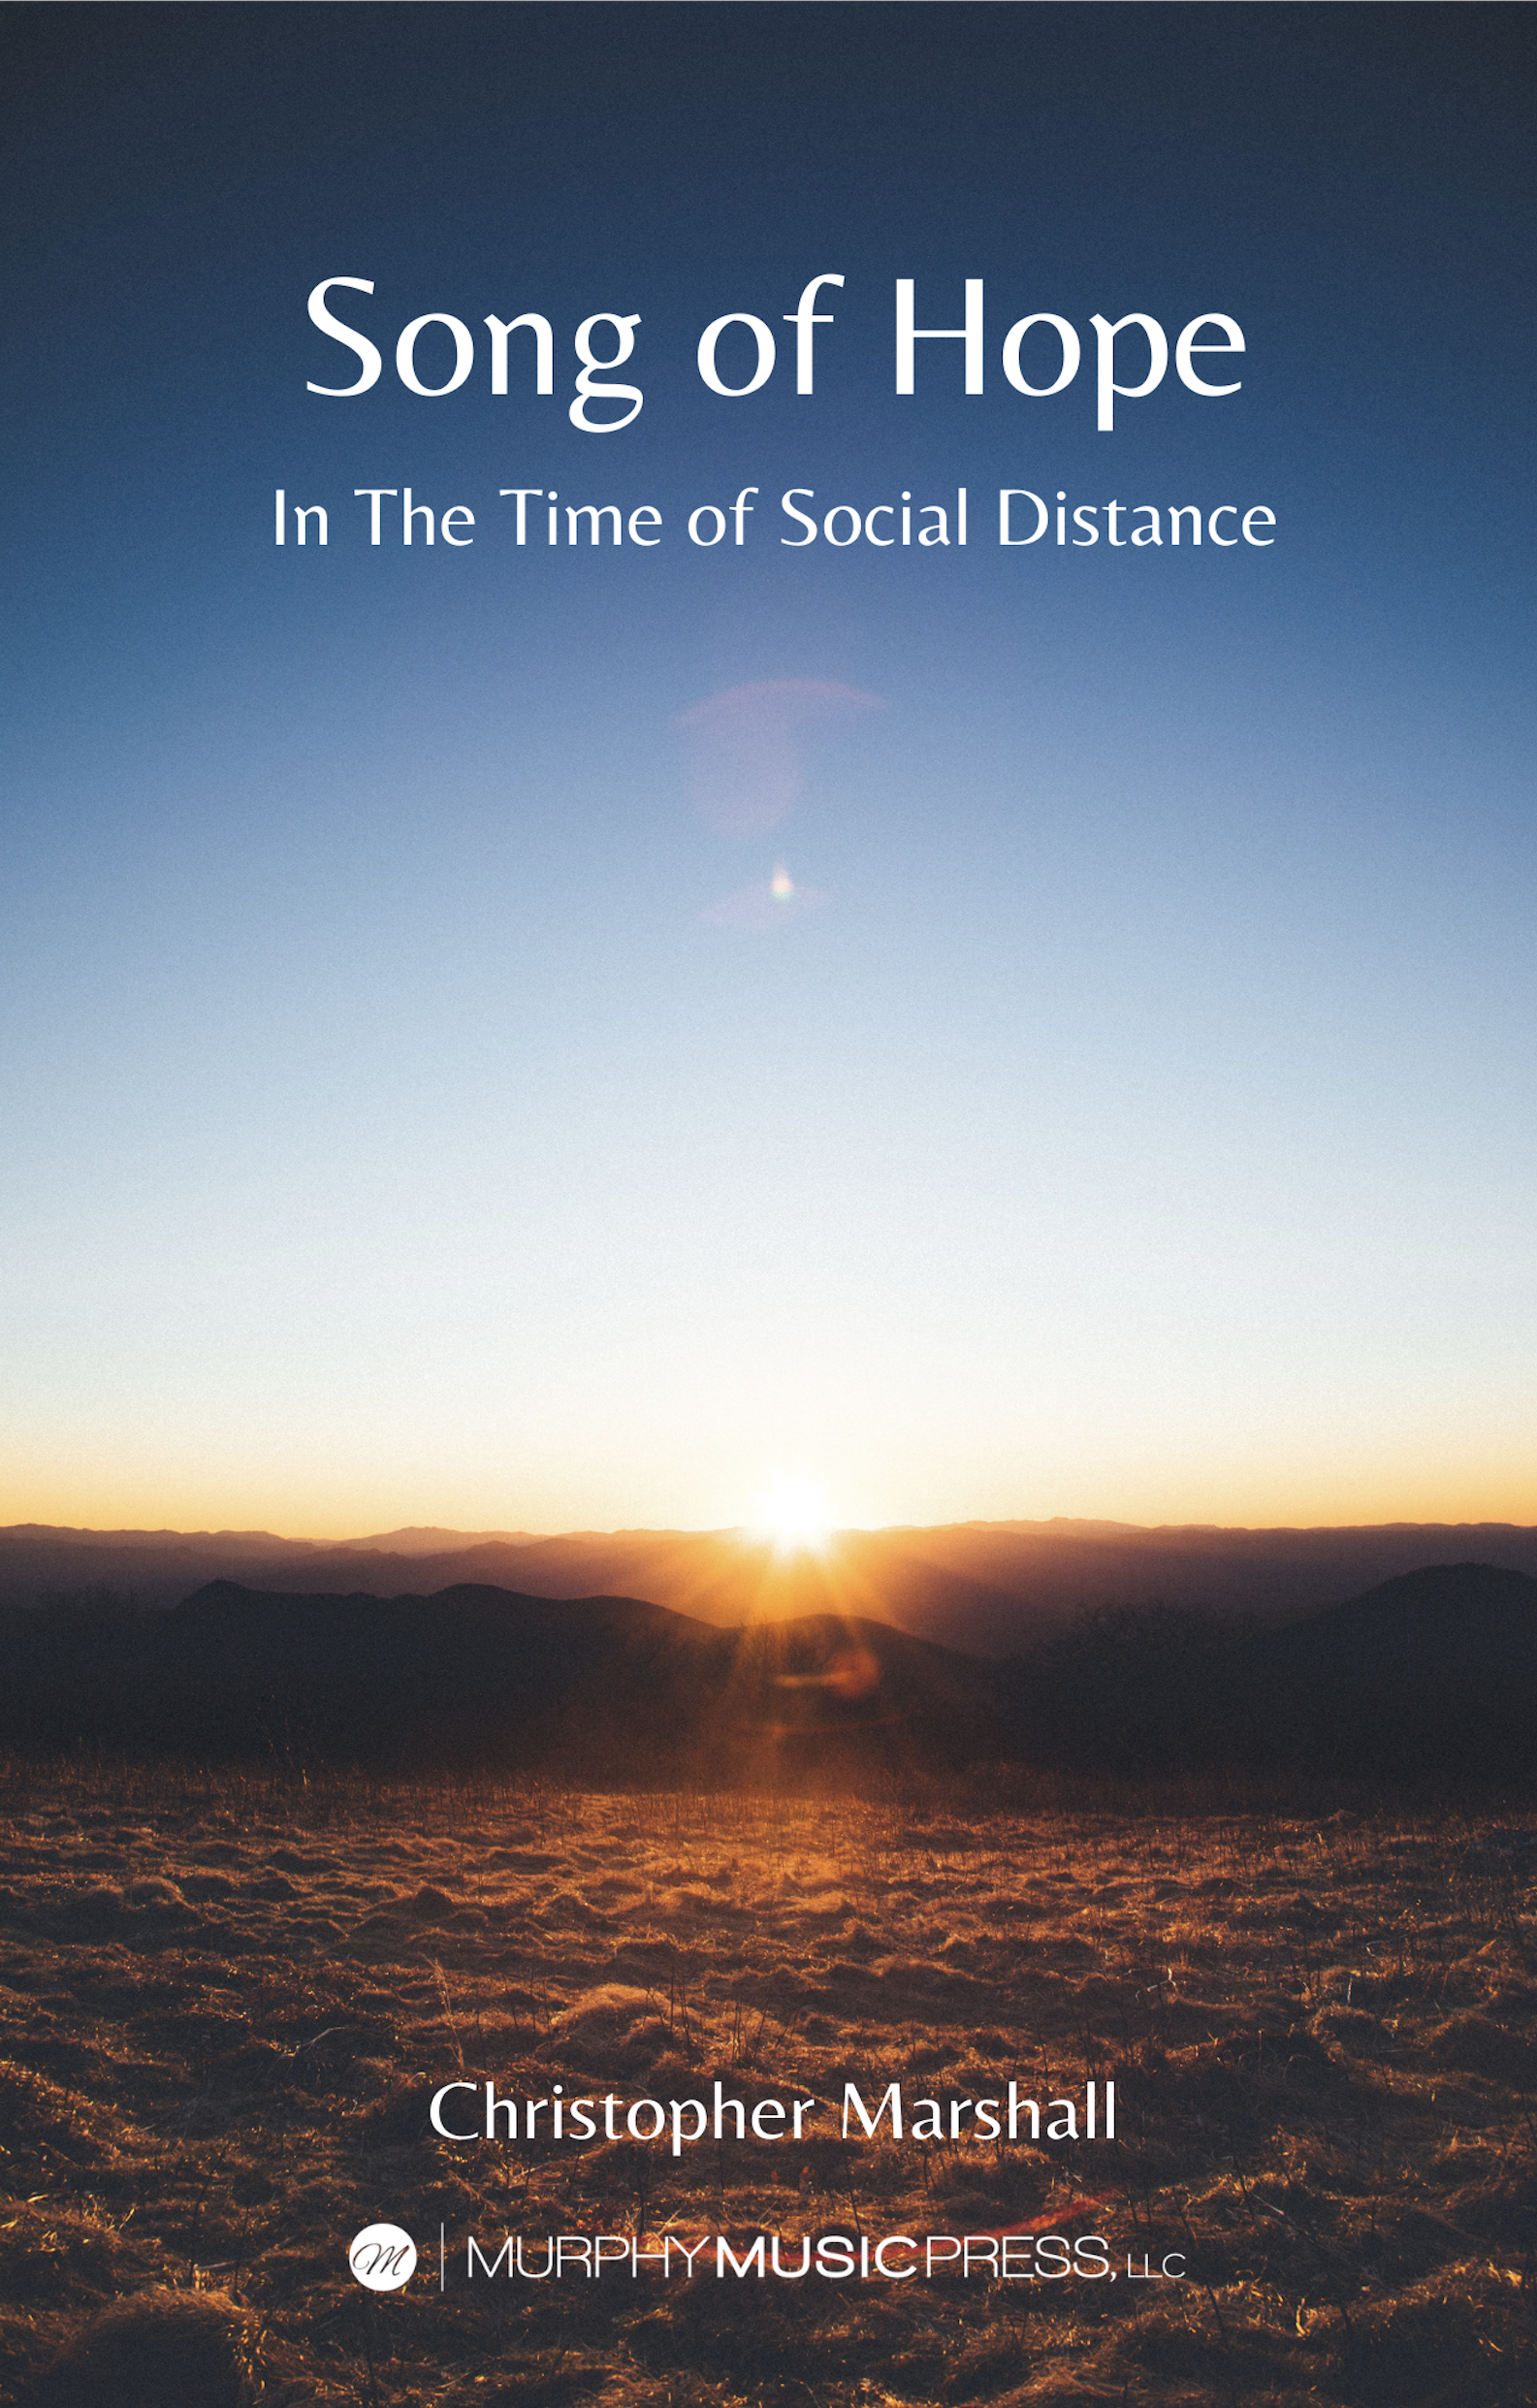 Song Of Hope (In The Time Of Social Distance) by Christopher Marshall